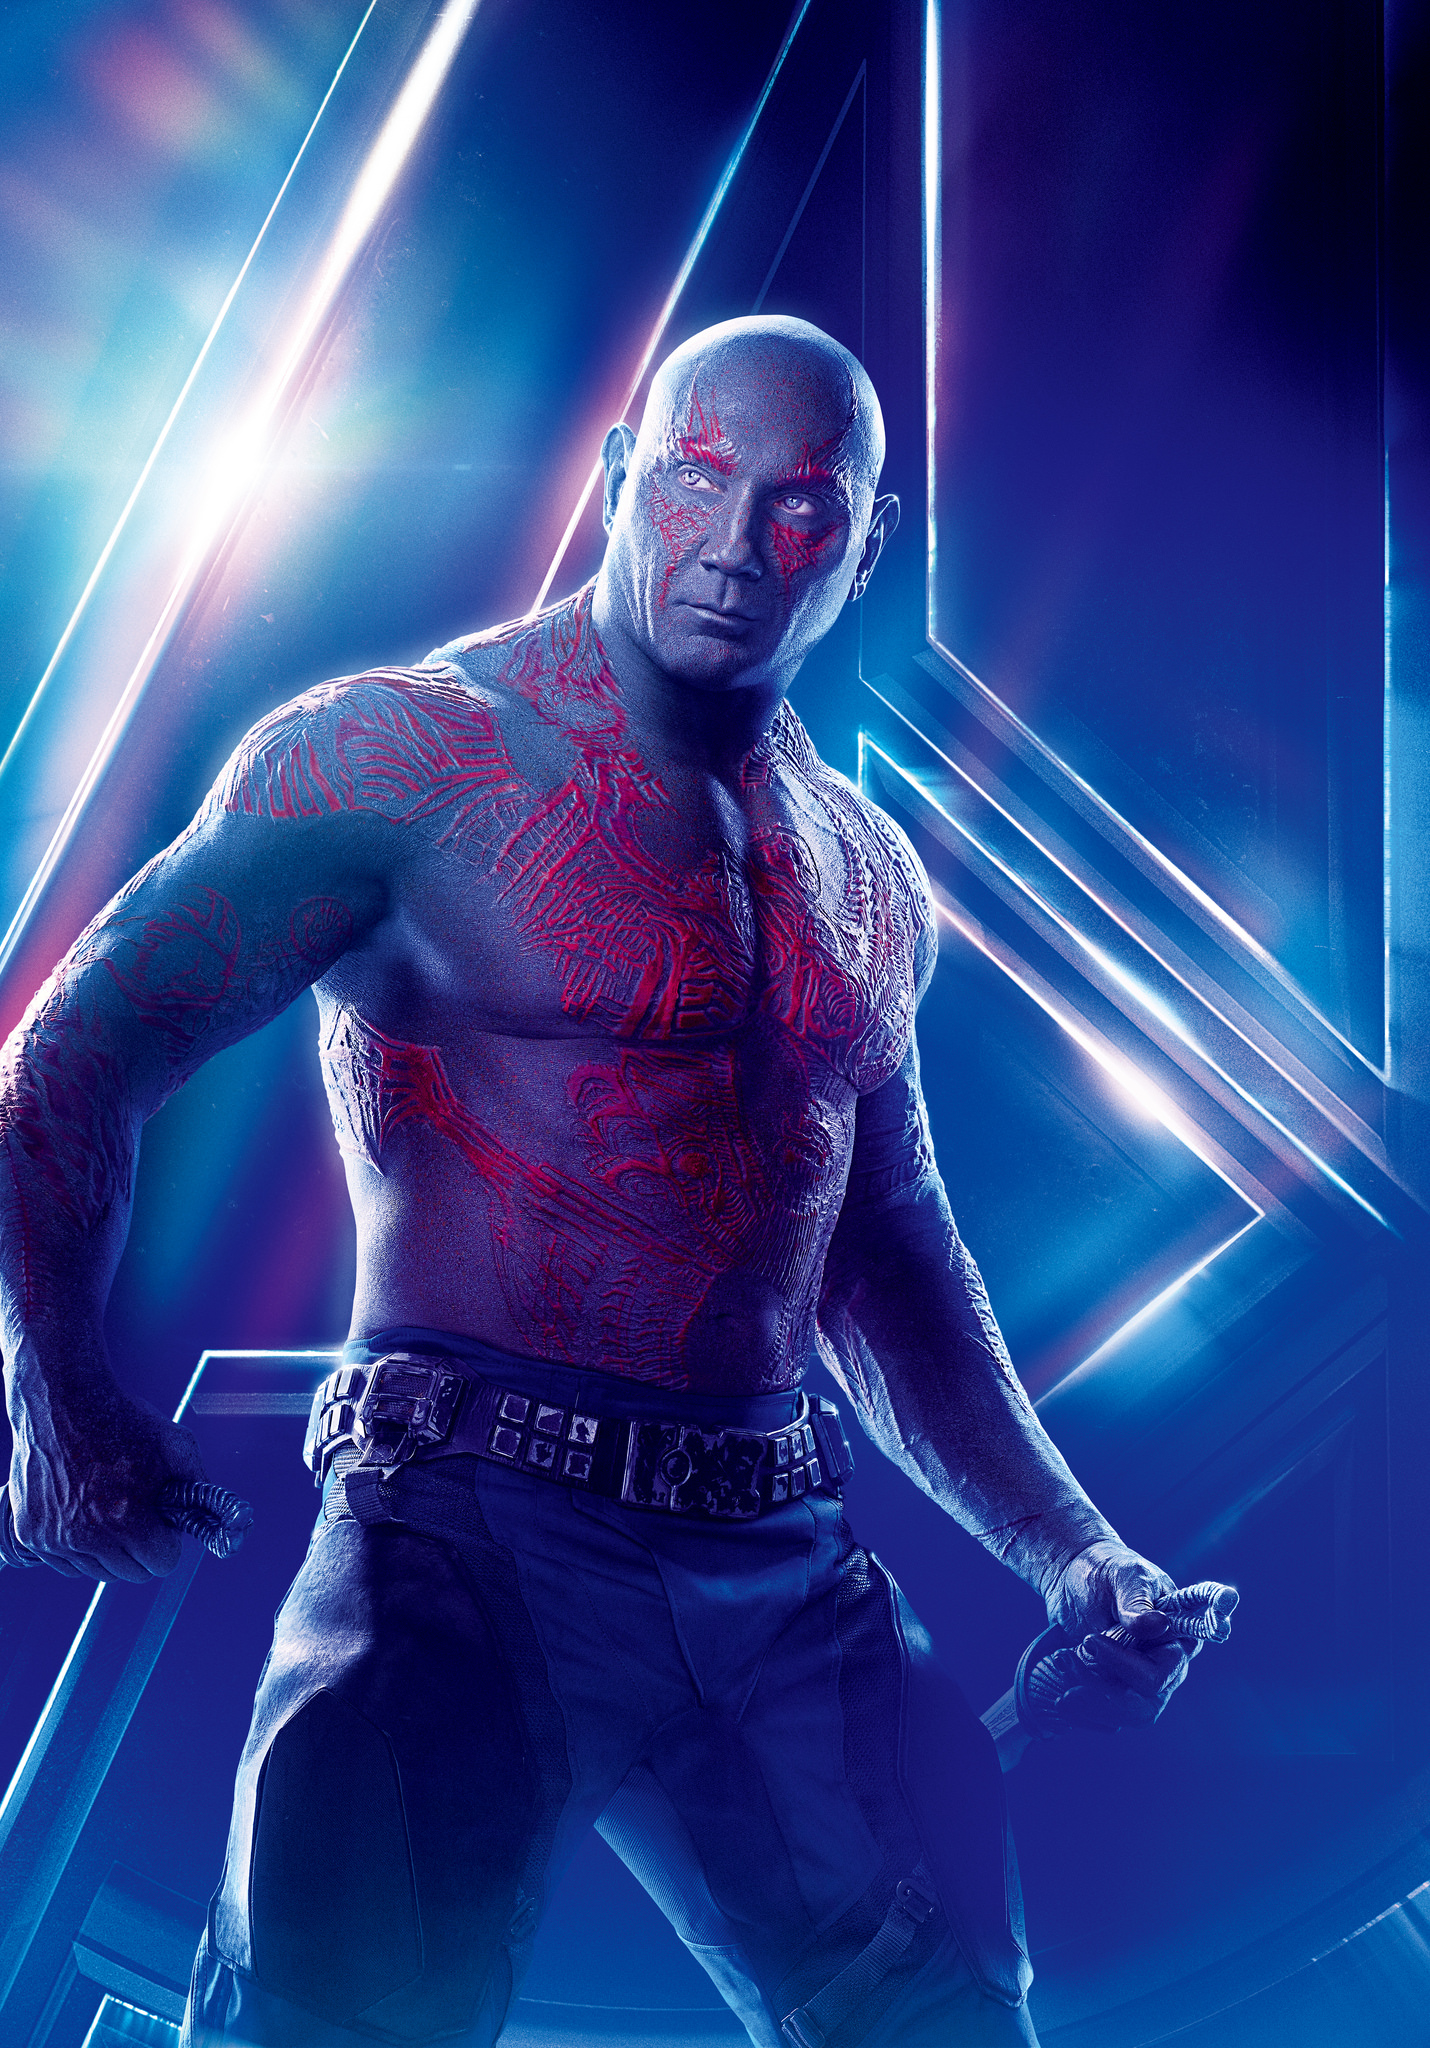 drax the destroyer character moviepedia fandom